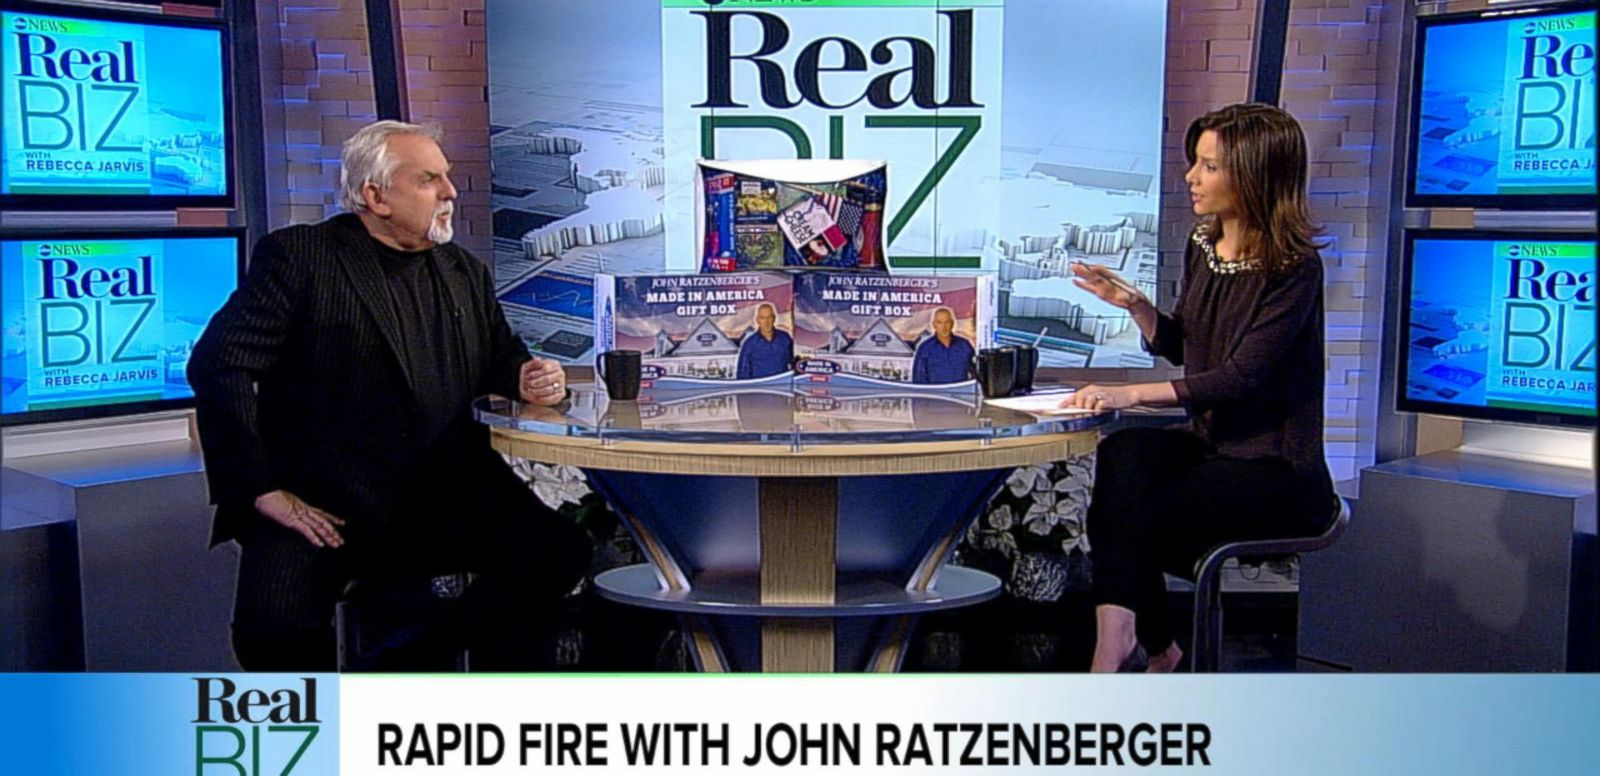 VIDEO: 6 Things You Probably Don't Know About Cheer's Star John Ratzenberger